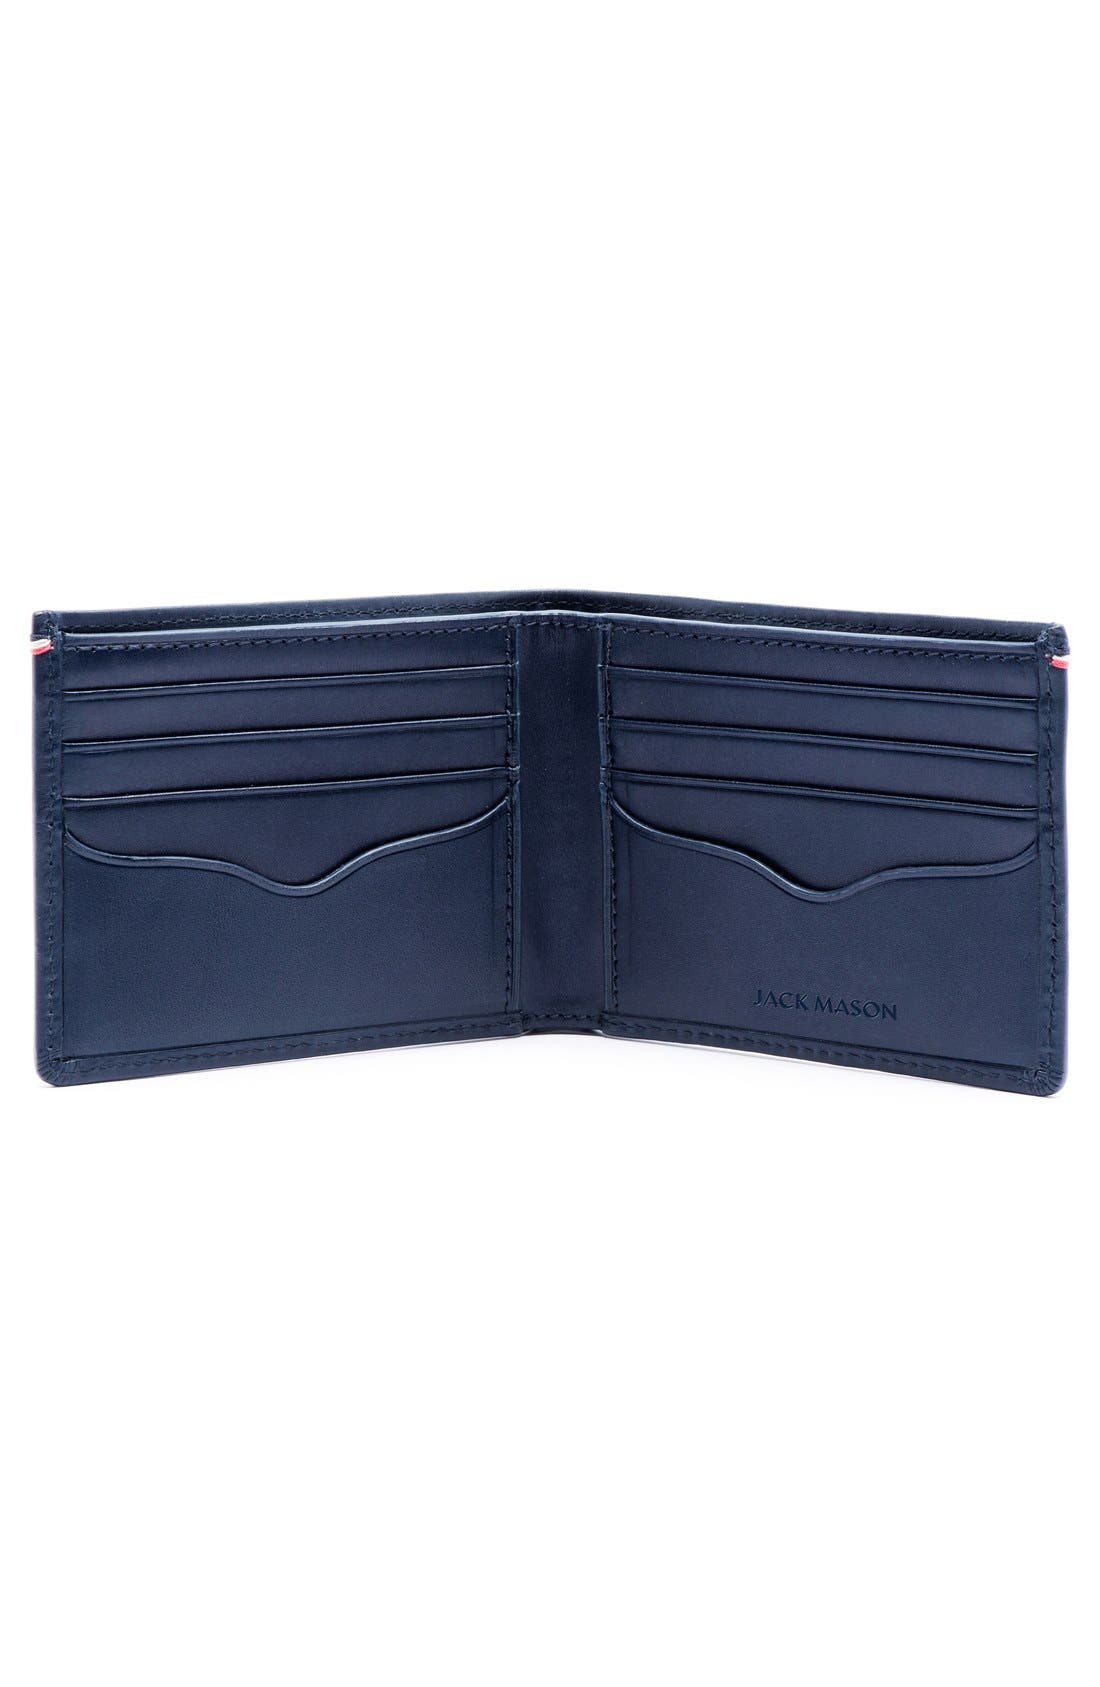 Star Leather Bifold Wallet,                             Alternate thumbnail 2, color,                             410